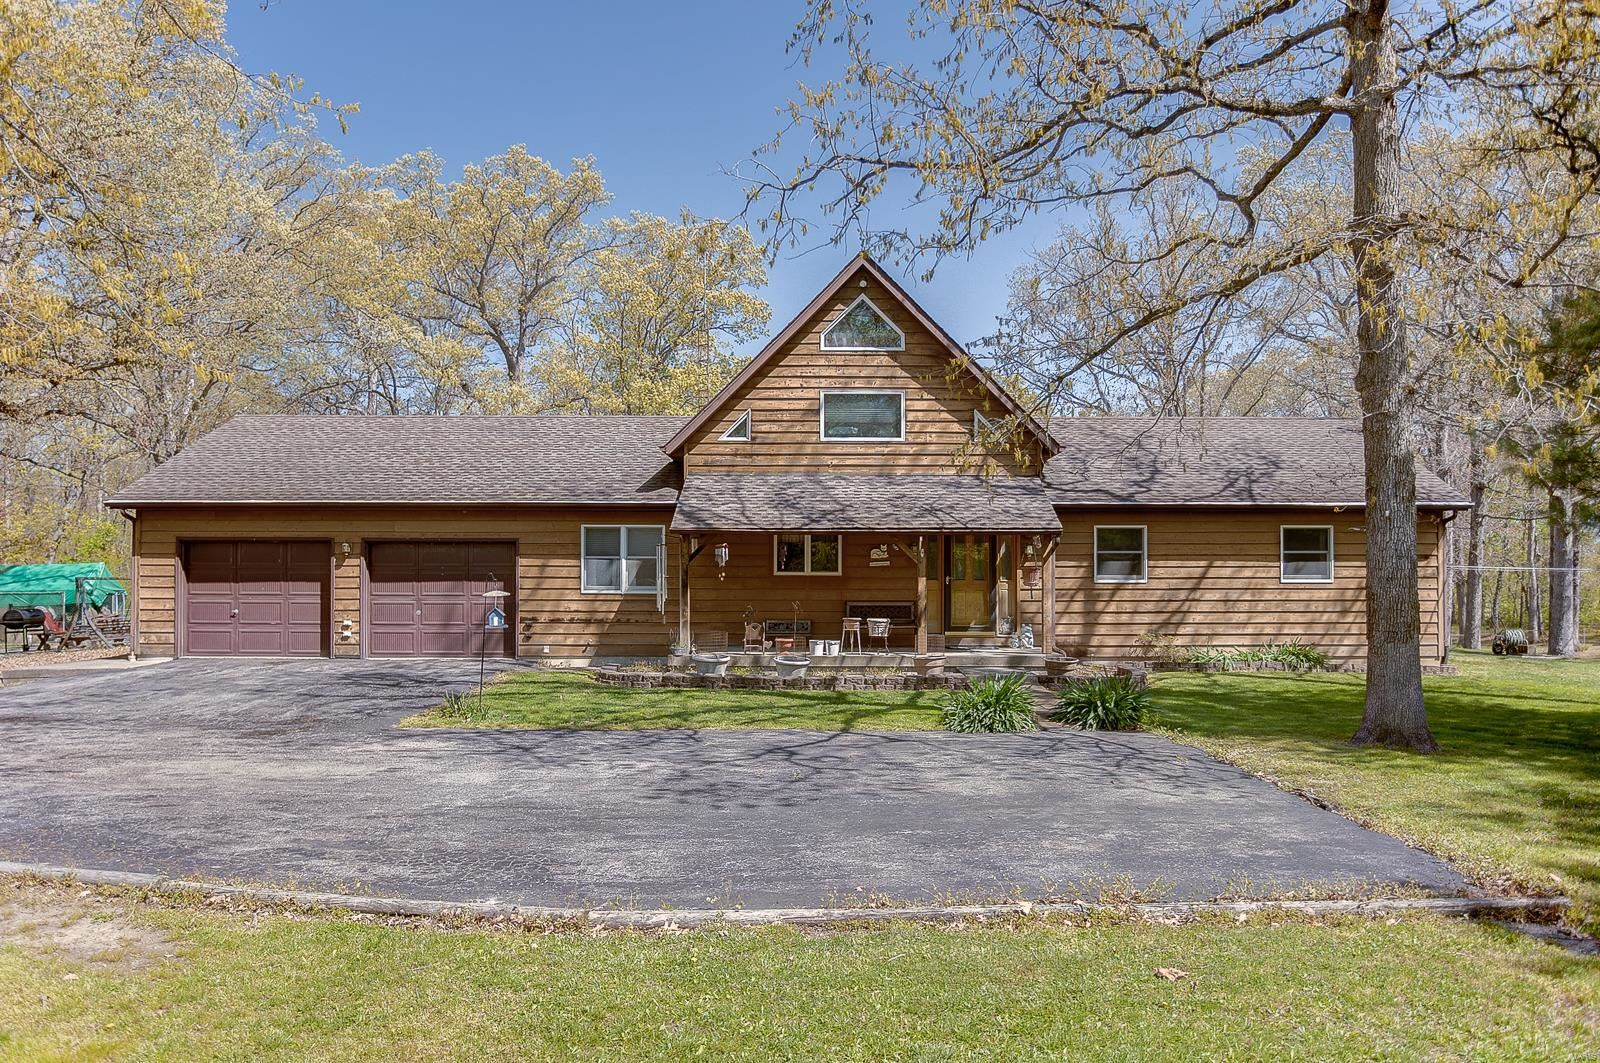 Photo for 15711 State Route 177, Nashville, IL 62263 (MLS # 21025863)